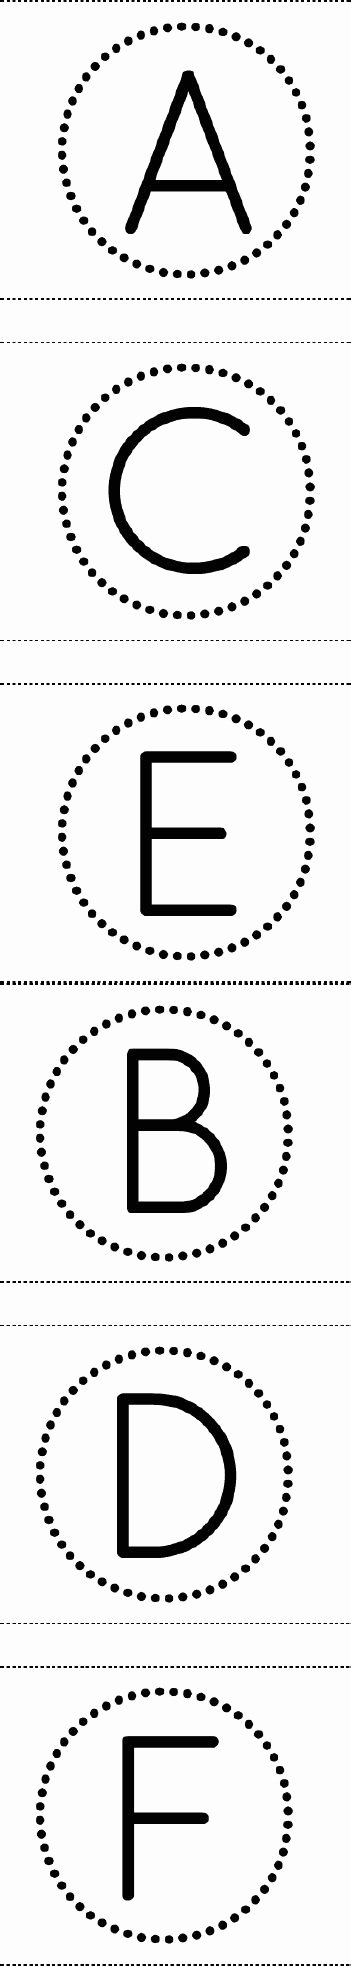 Circle Banner Template Elegant Free Printable Circle Banner Alphabet for Making